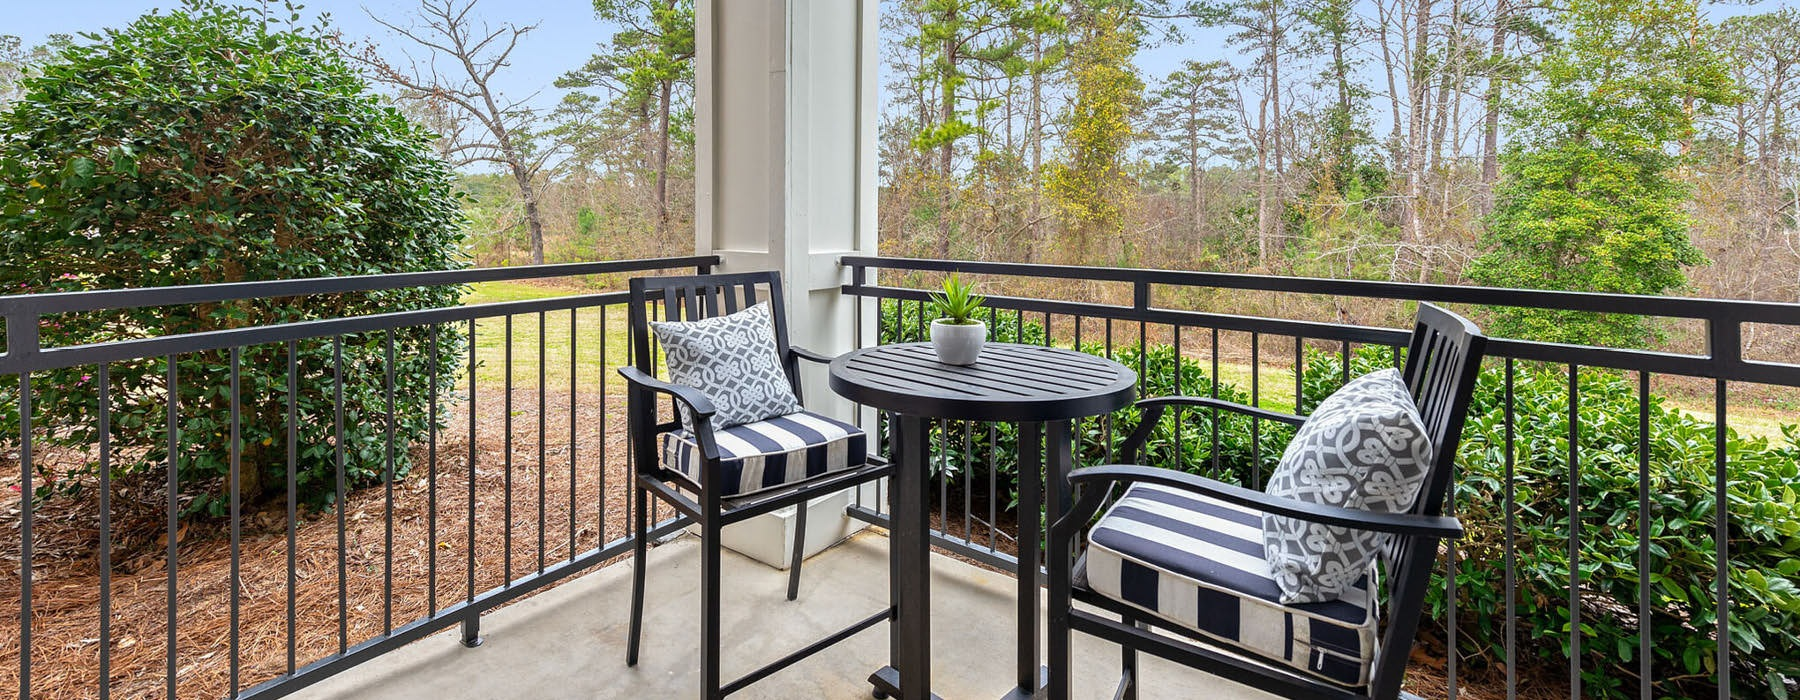 furnished patio with railings and nature views